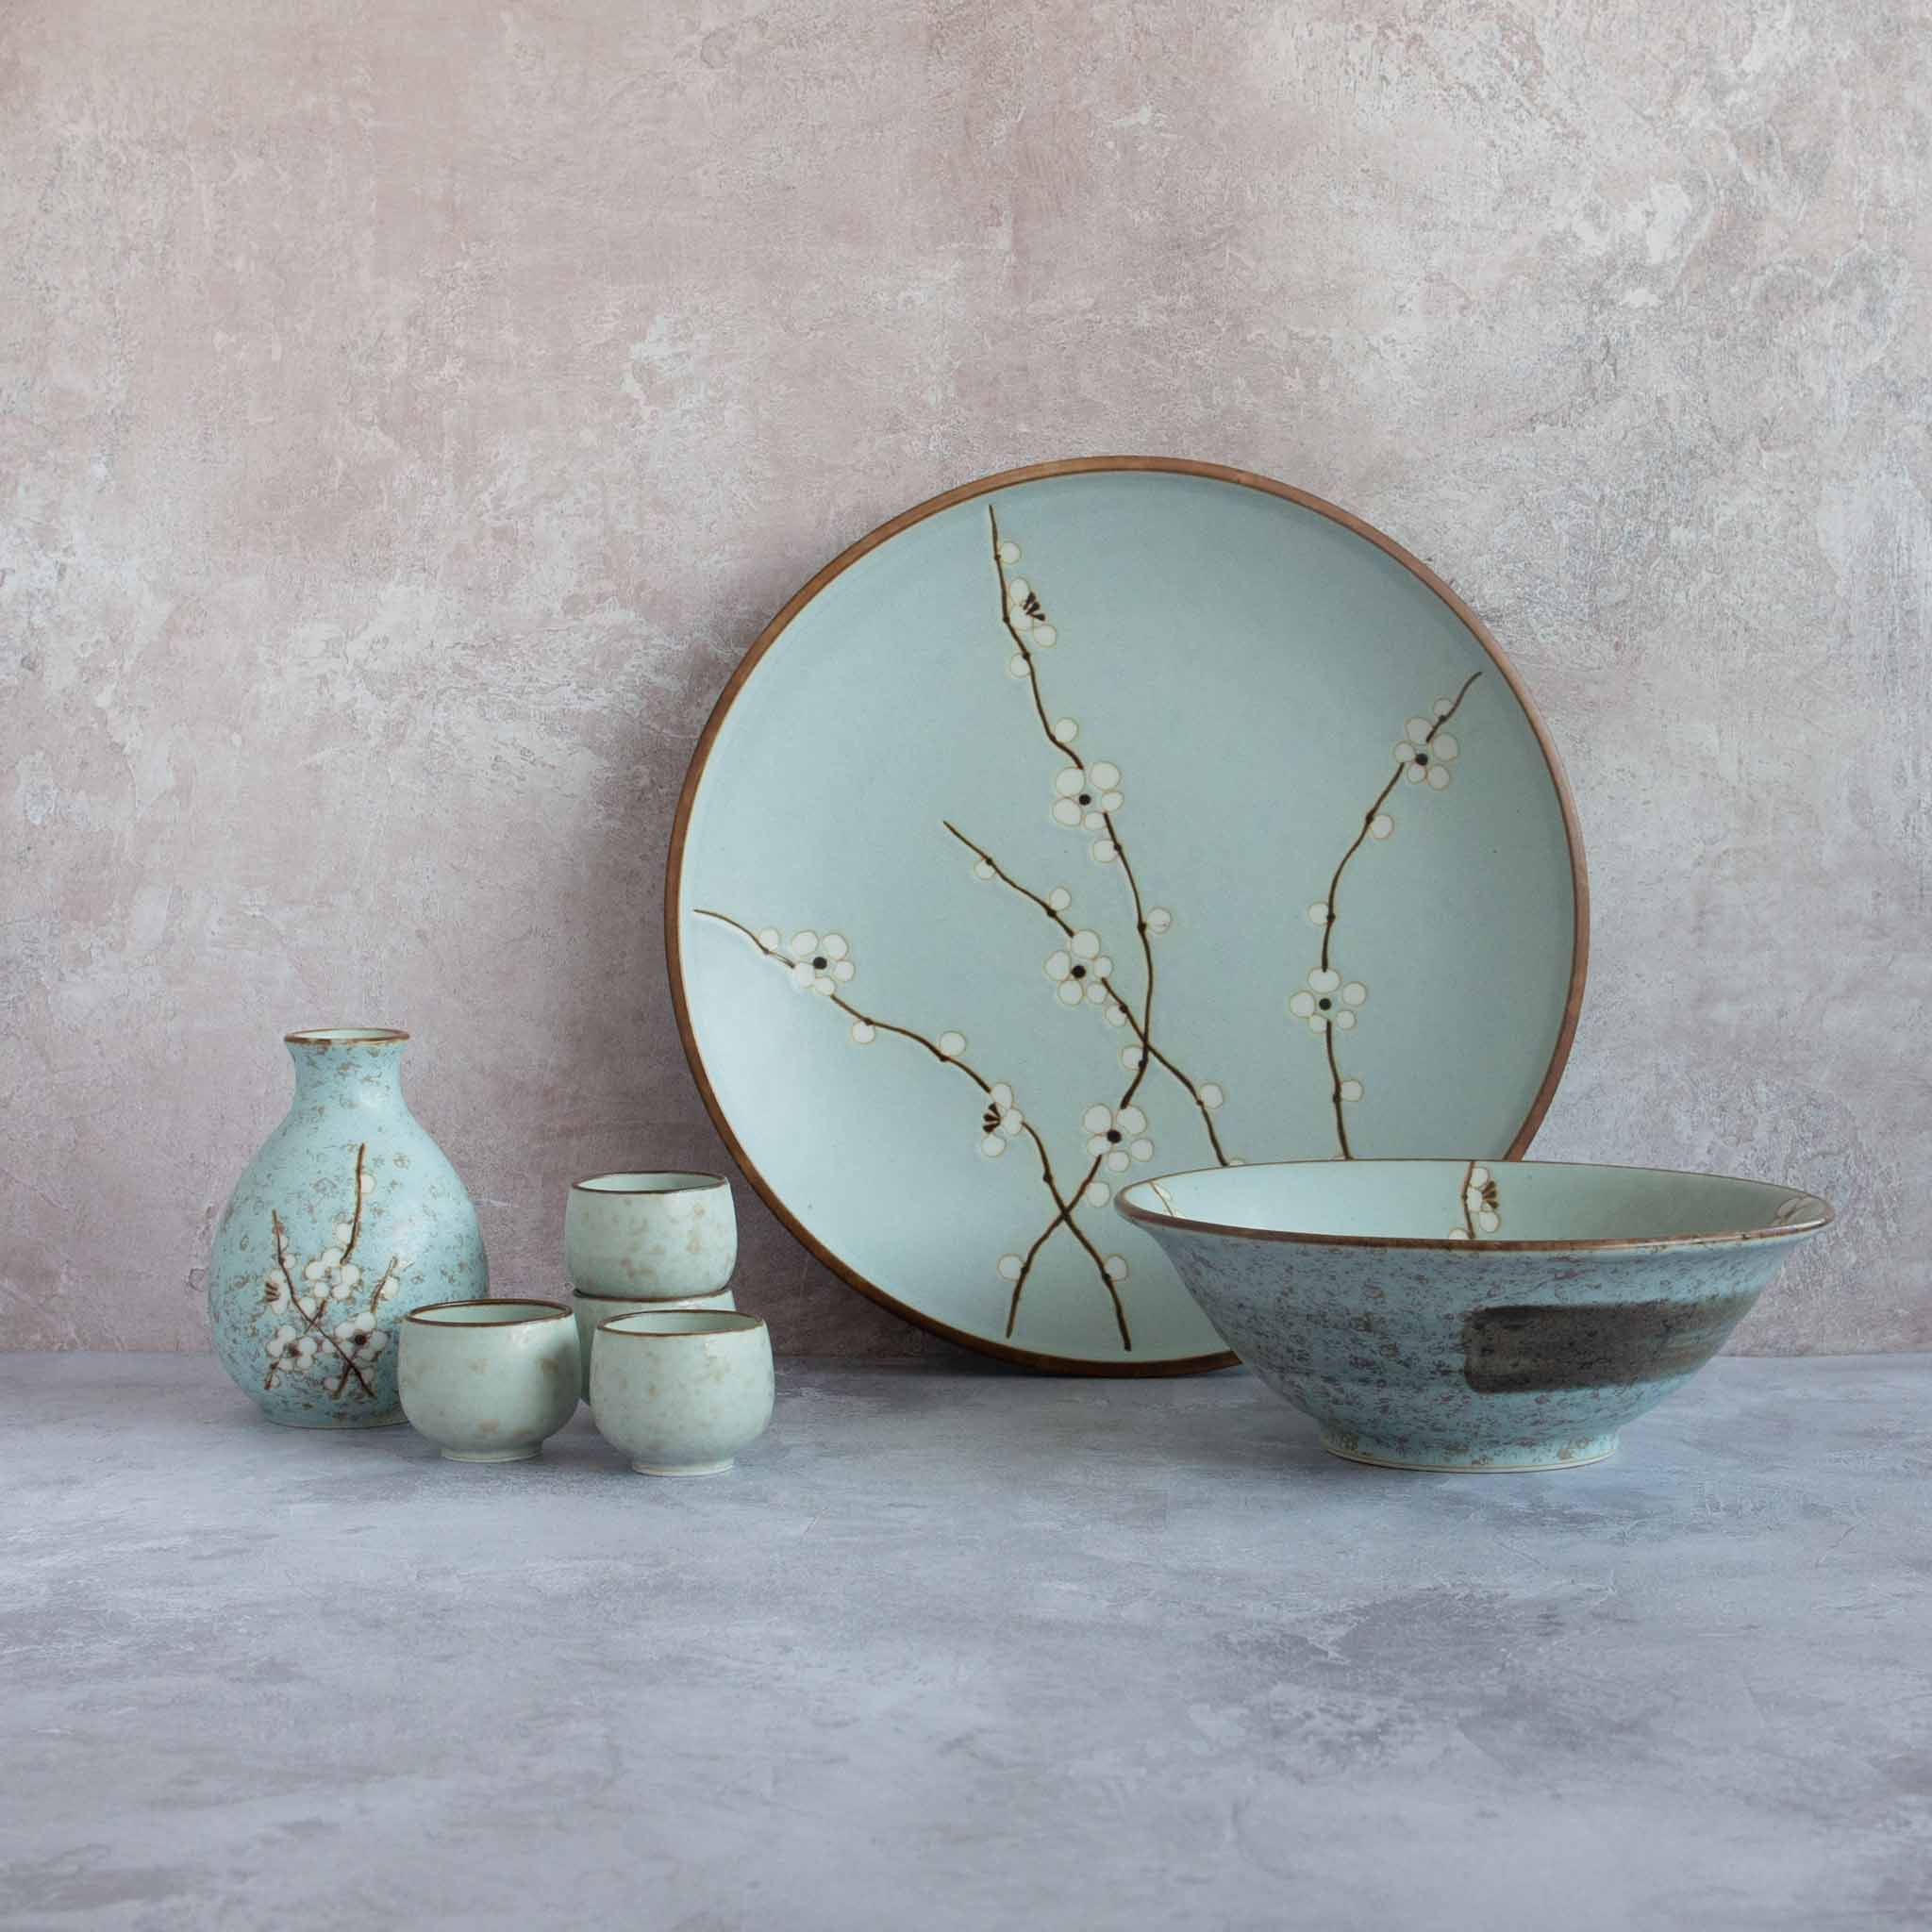 Kiji Stoneware & Ceramics Sakura Rice Bowl Tableware Japanese Tableware